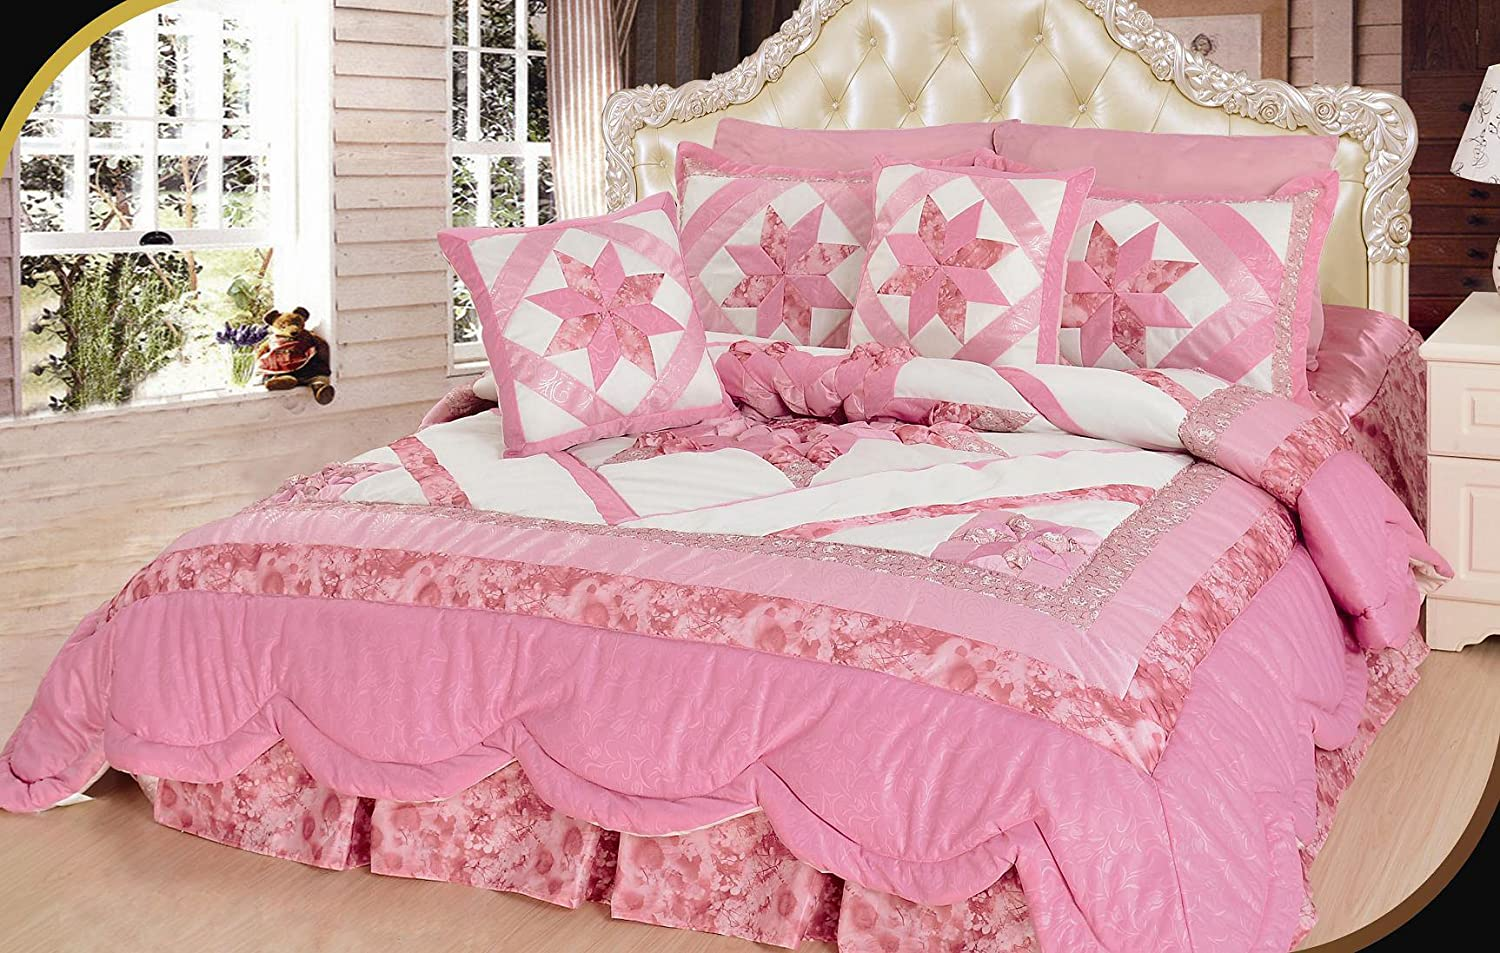 New Girly Girl 5-Piece Quilt Set, California King, Patchwork, Pink